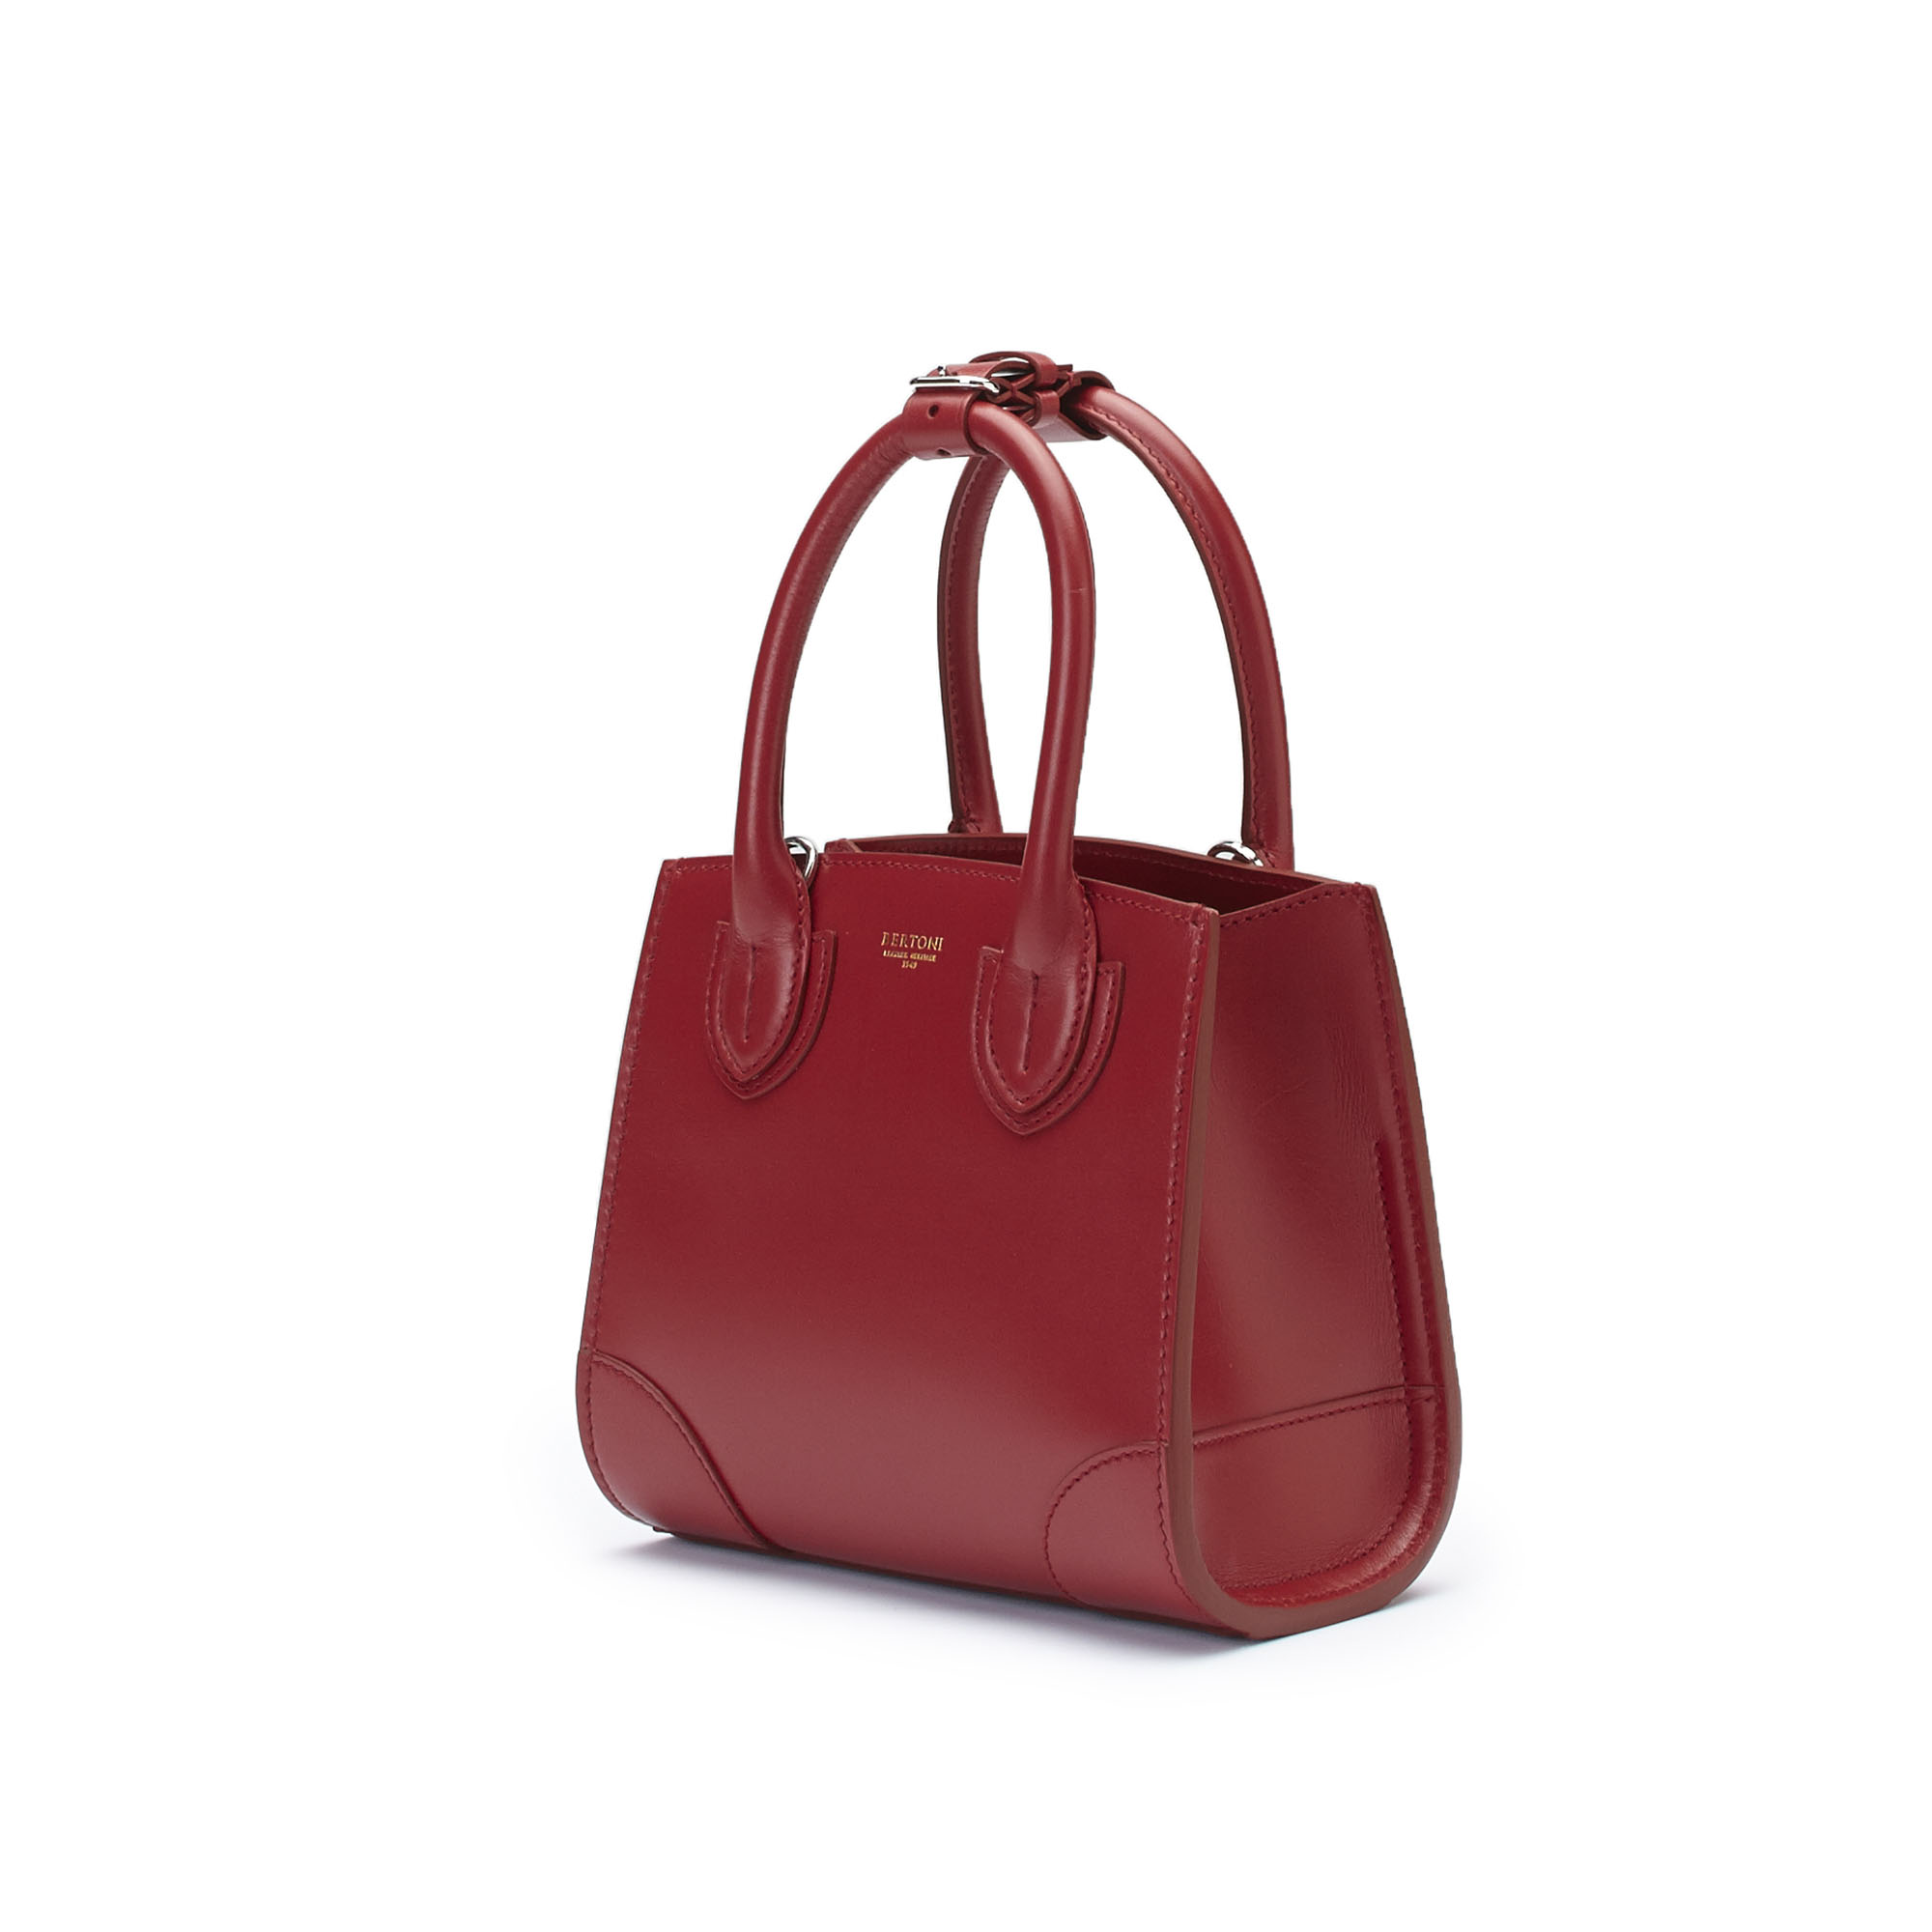 The red french calf Darcy bag by Bertoni 1949 03